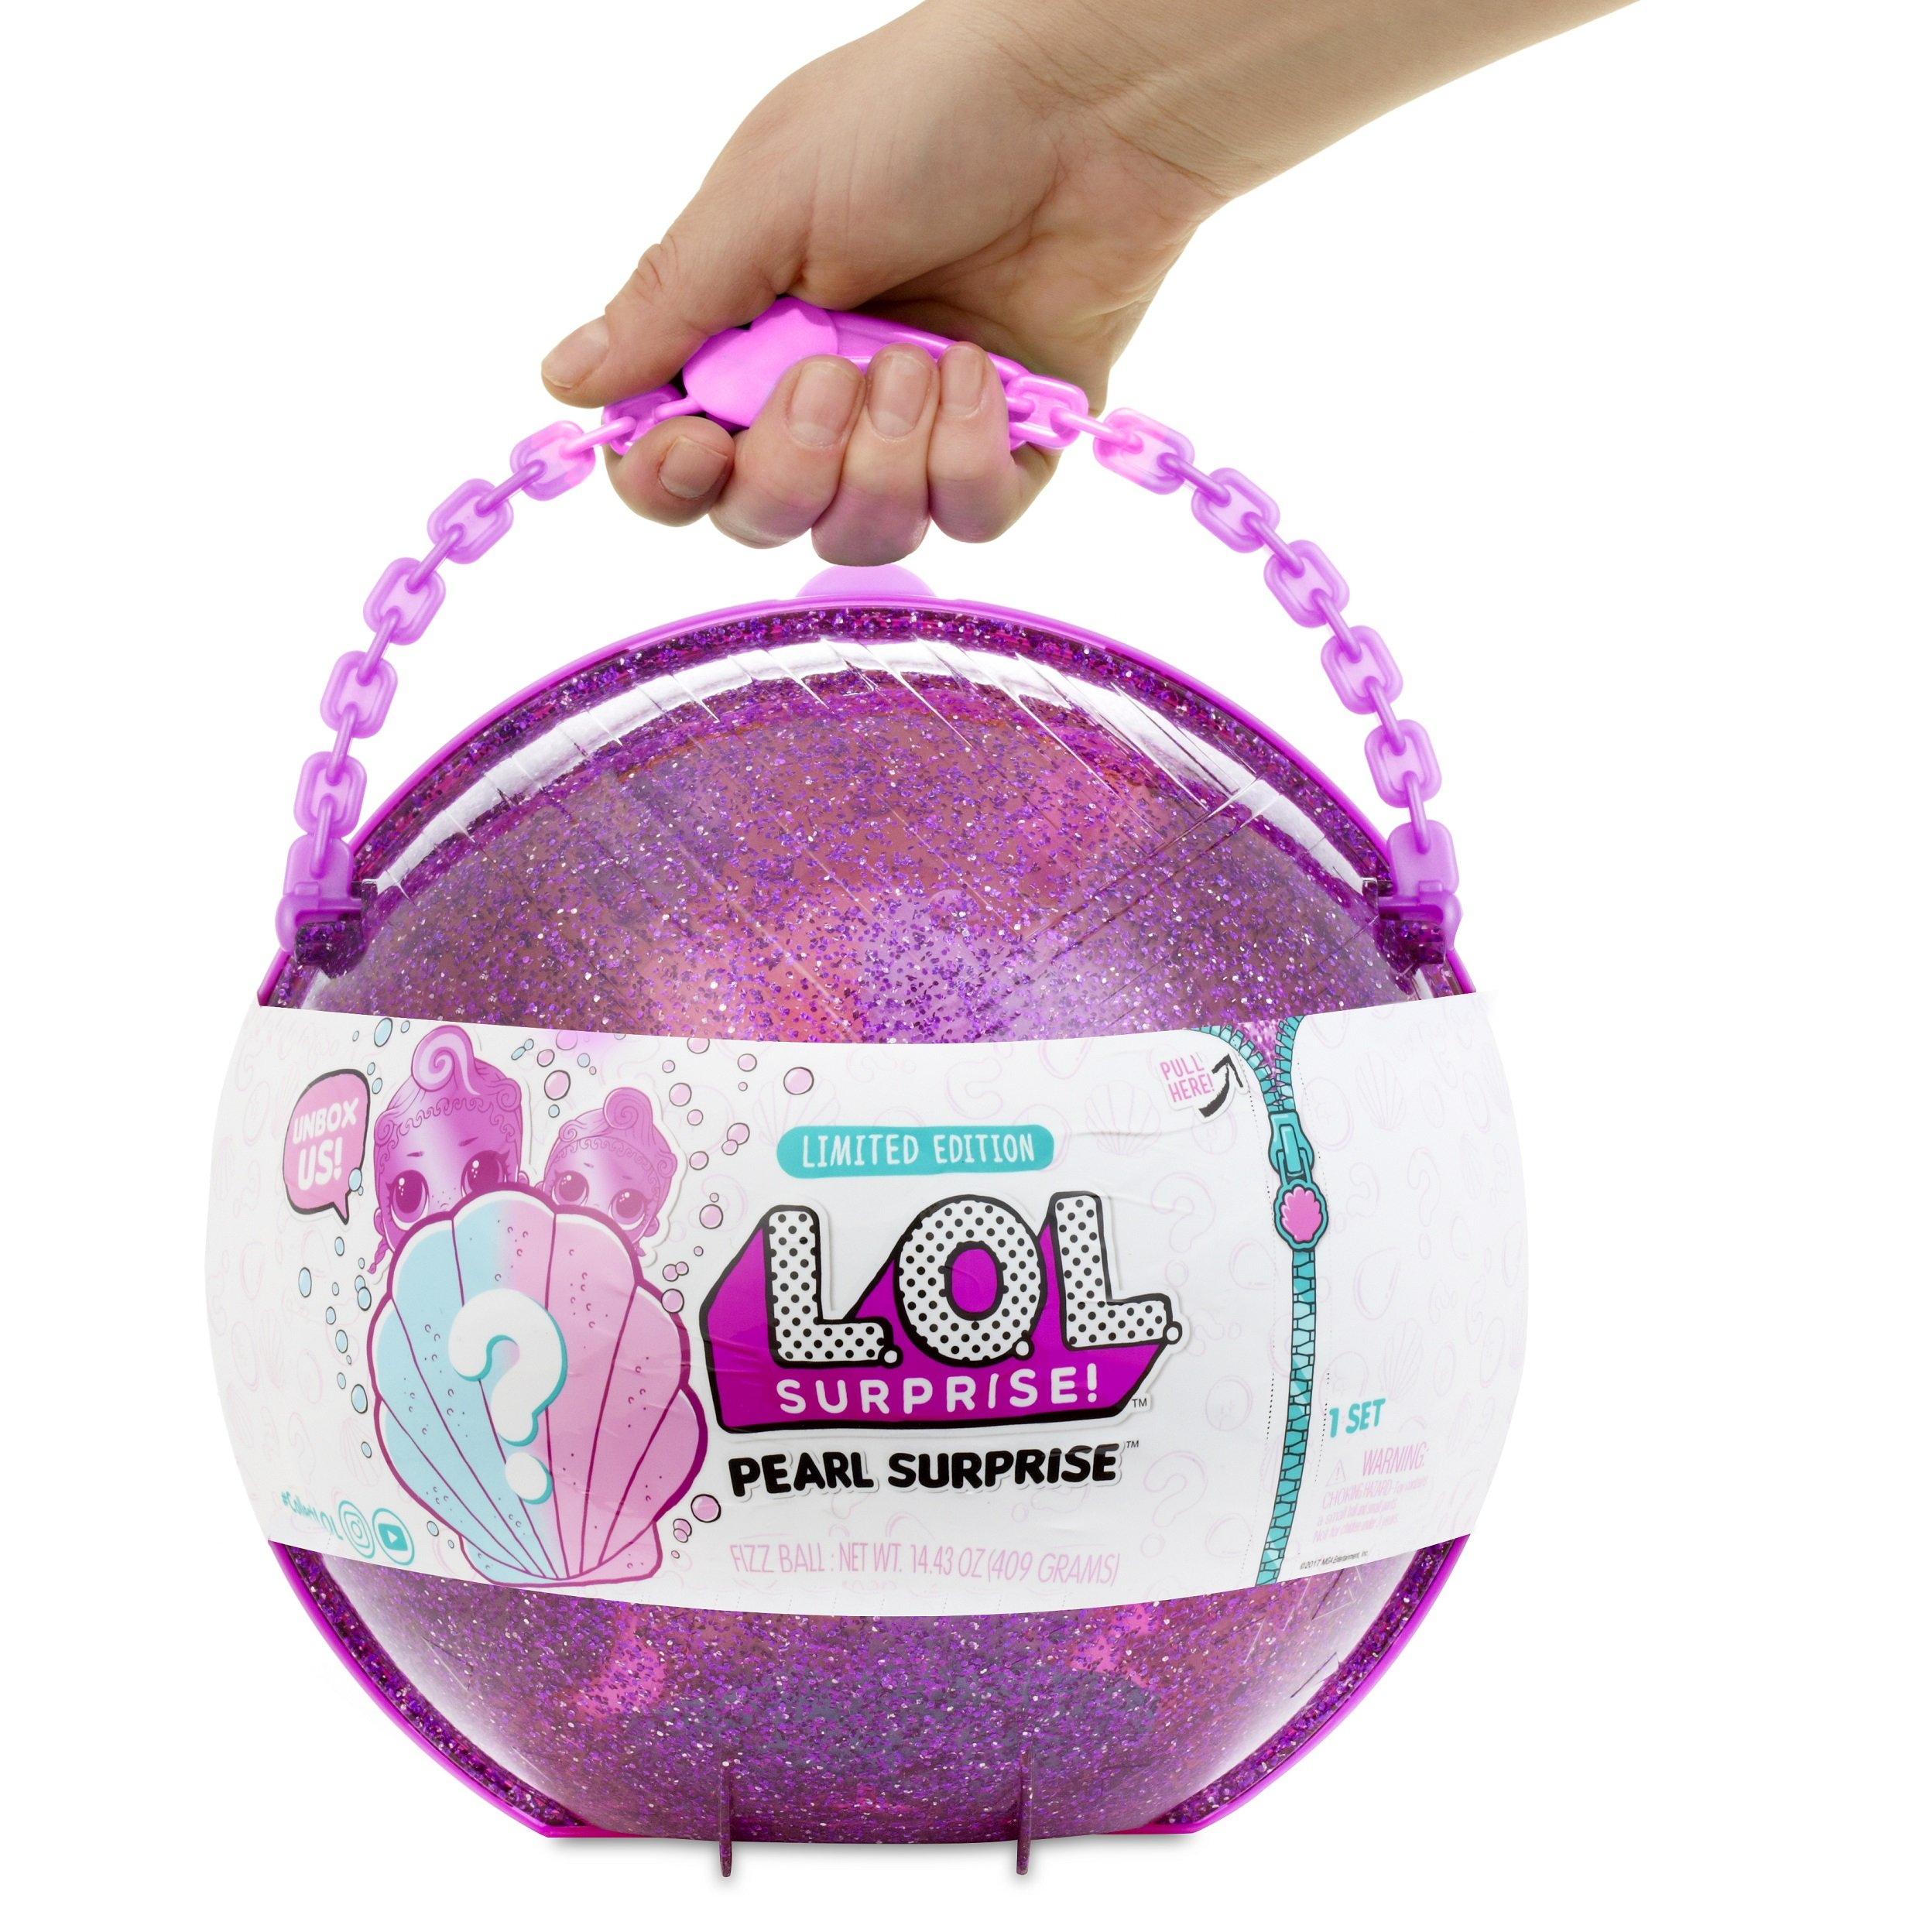 L.O.L. Surprise! Pearl Style 2 Unwrapping Toy by L.O.L. Surprise! (Image #2)